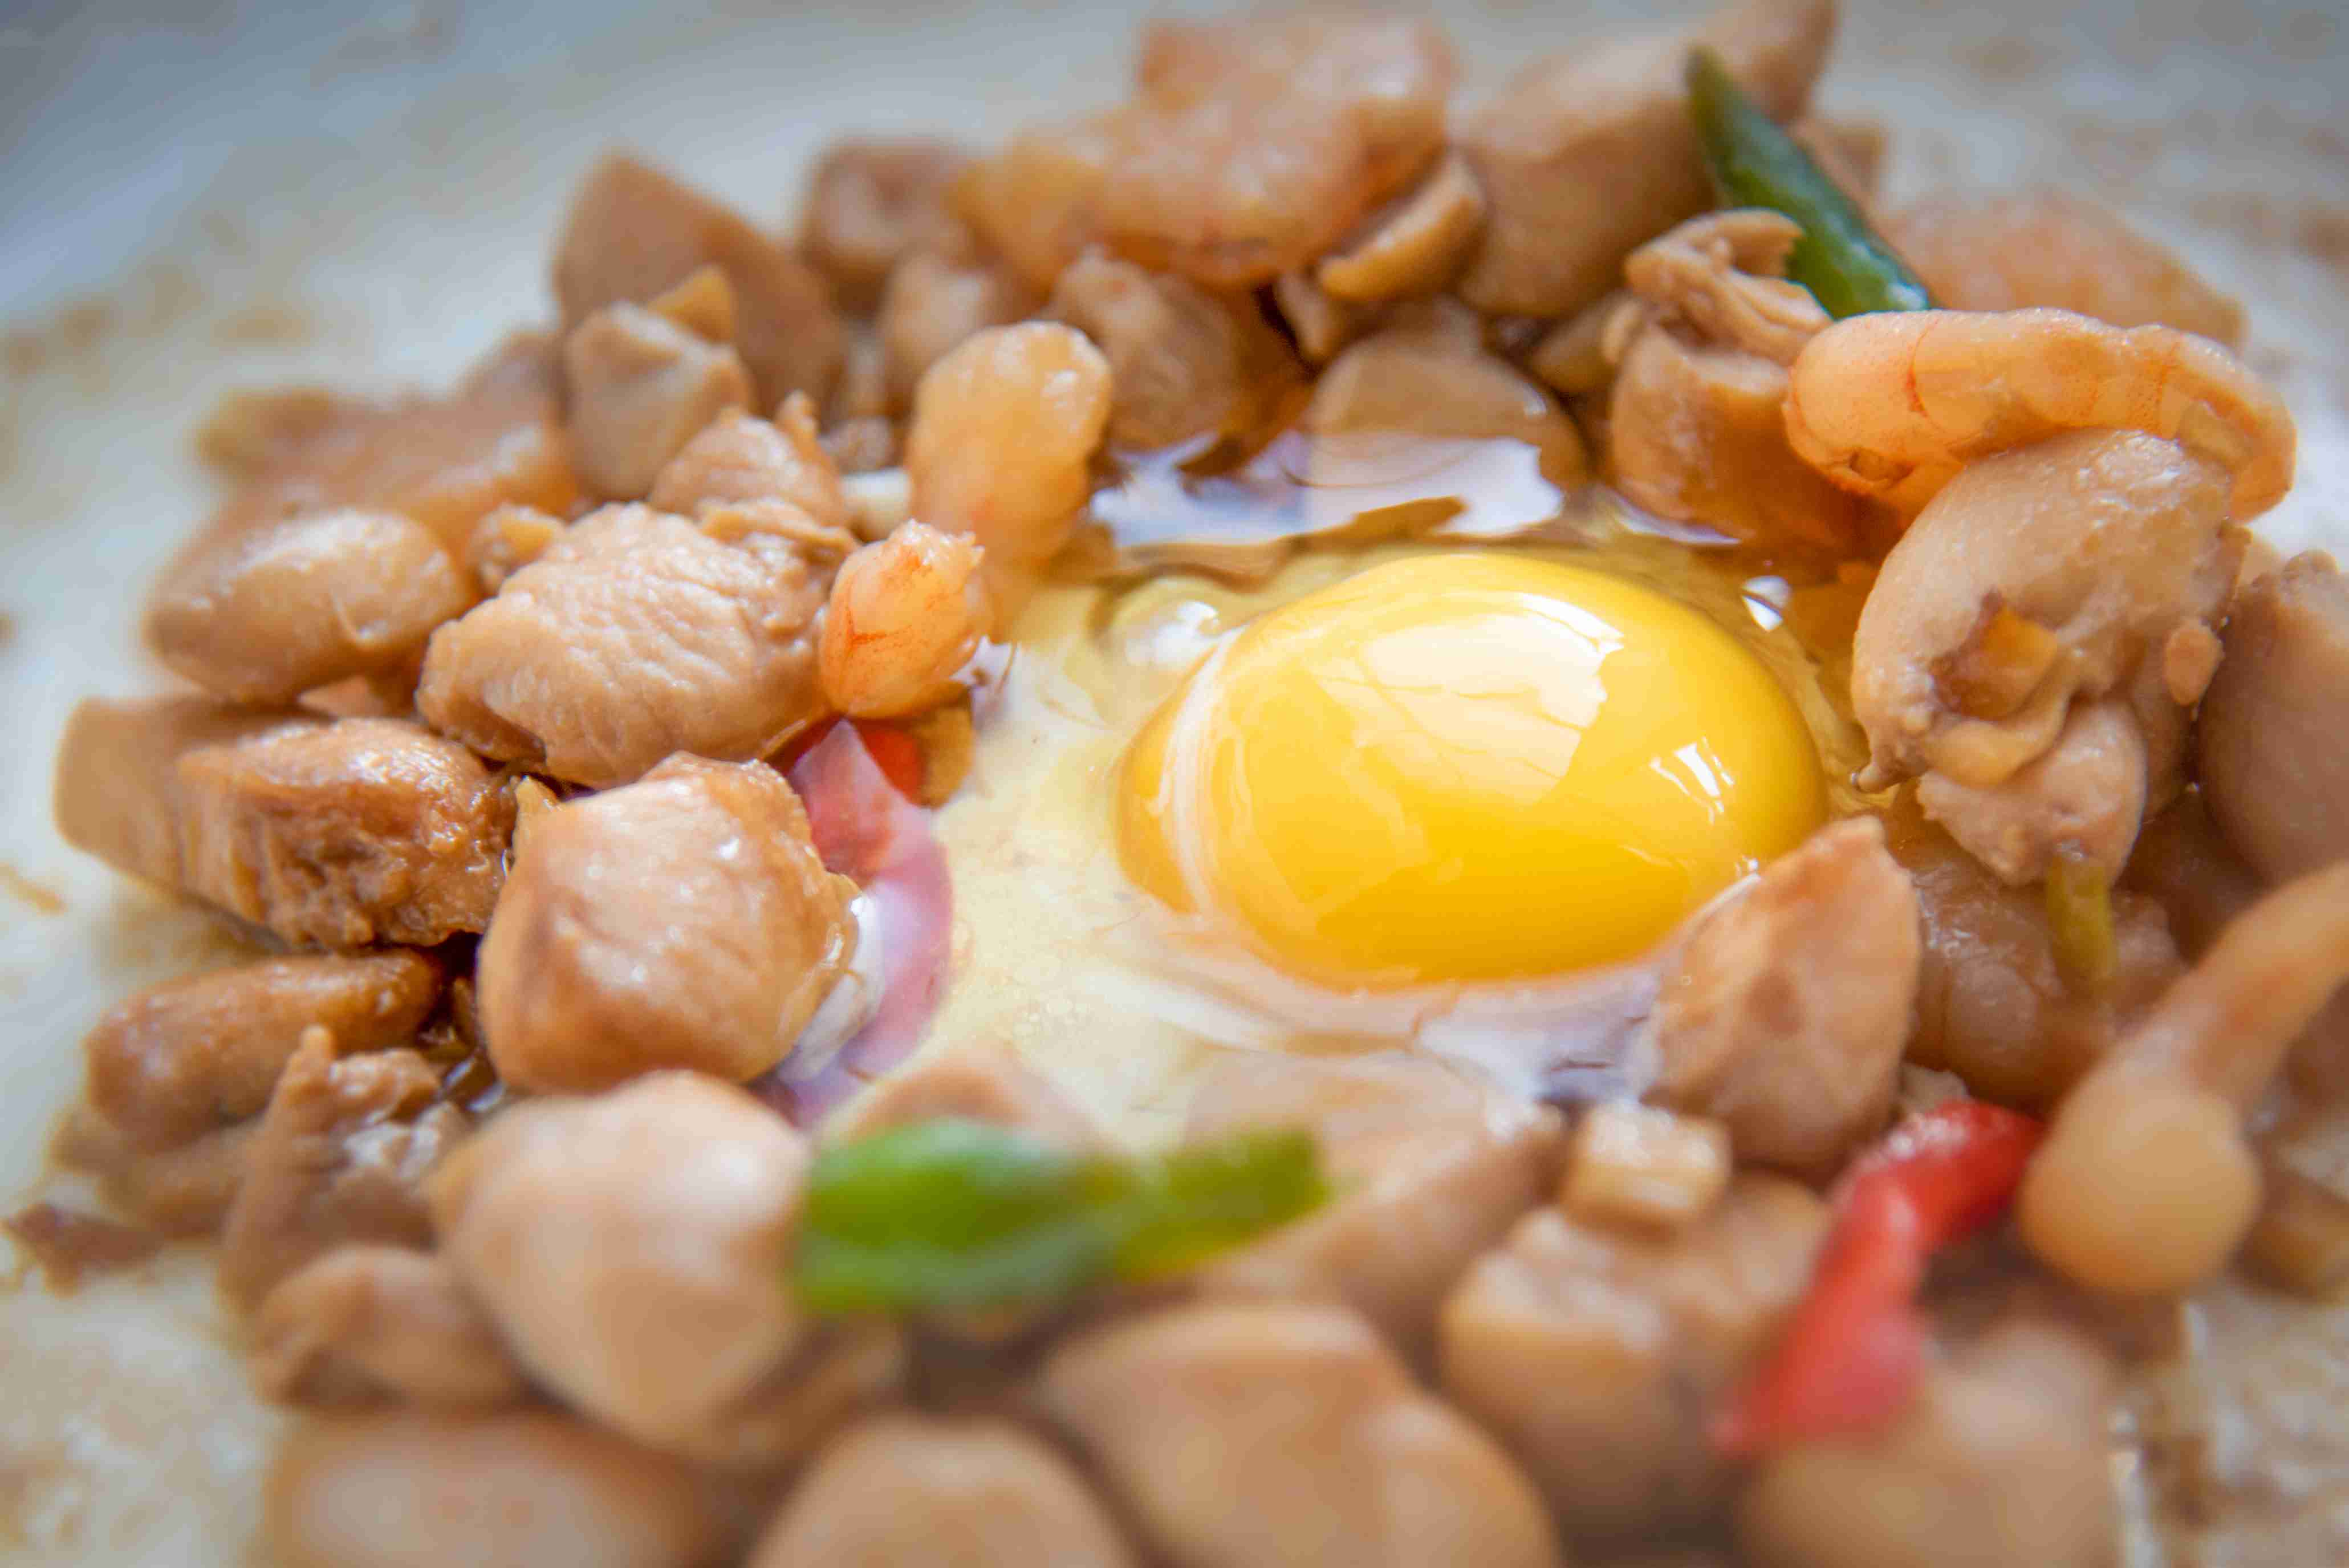 Crack an egg to stir fry in pan and scramble